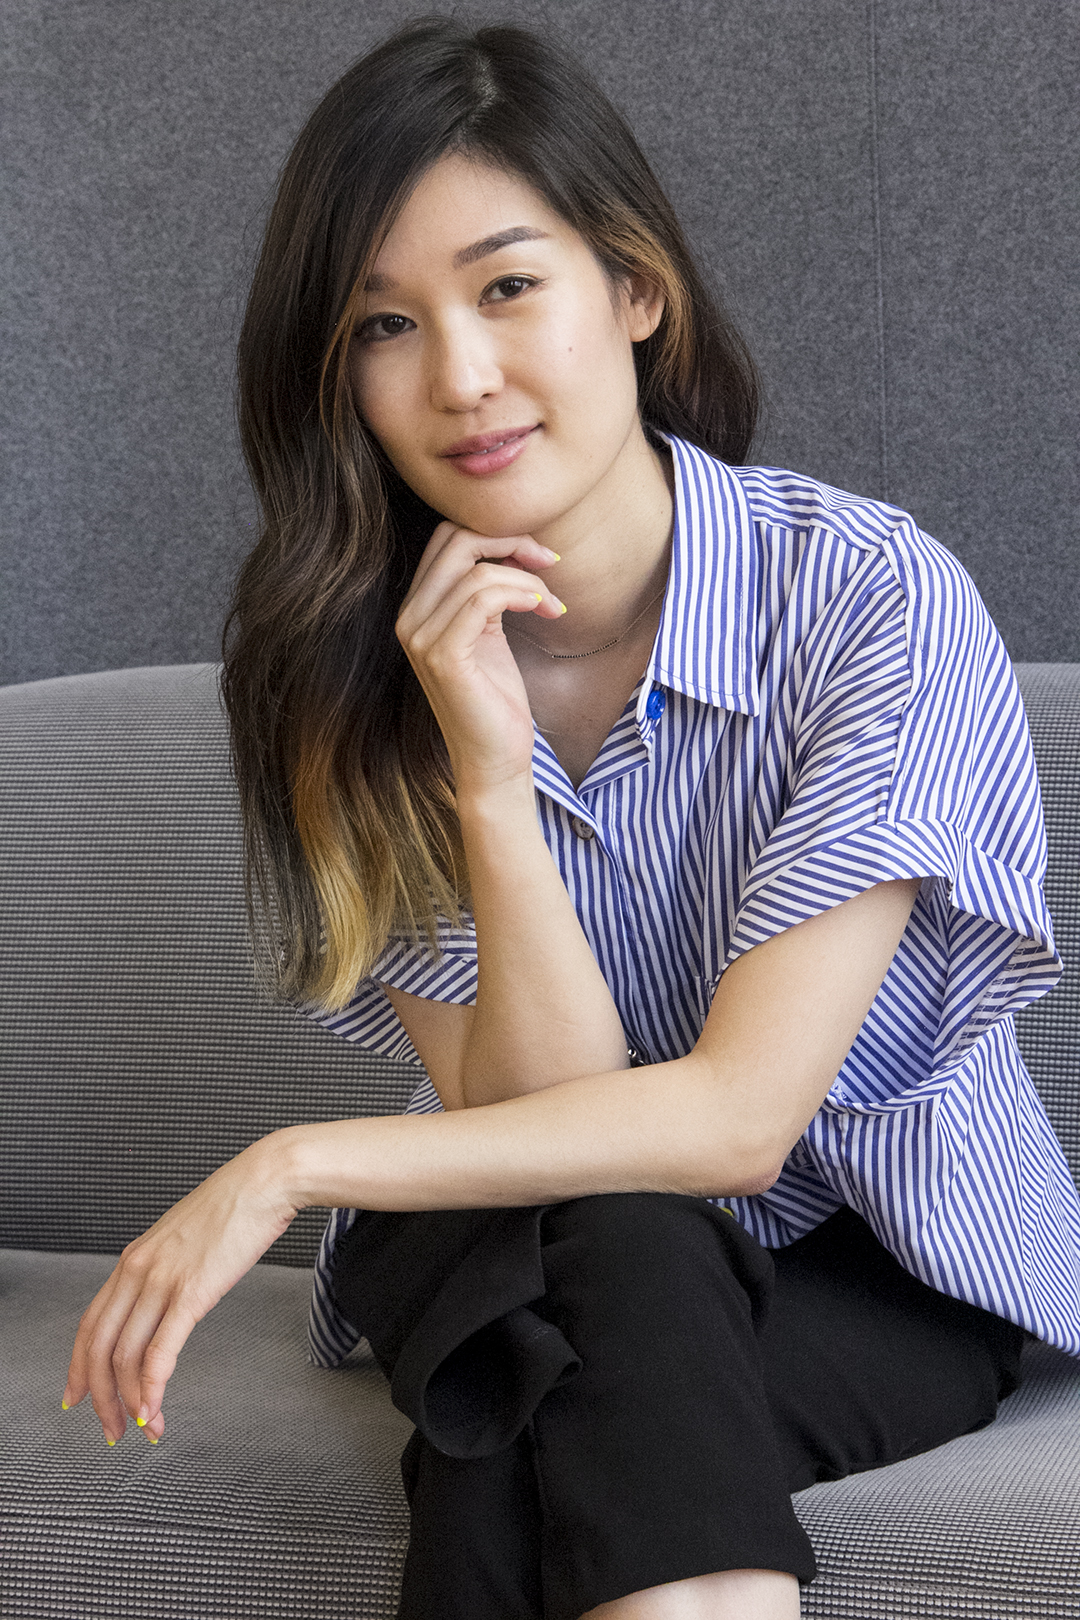 Charlotte Cho, founder of Korean Beauty destination Soko Glam